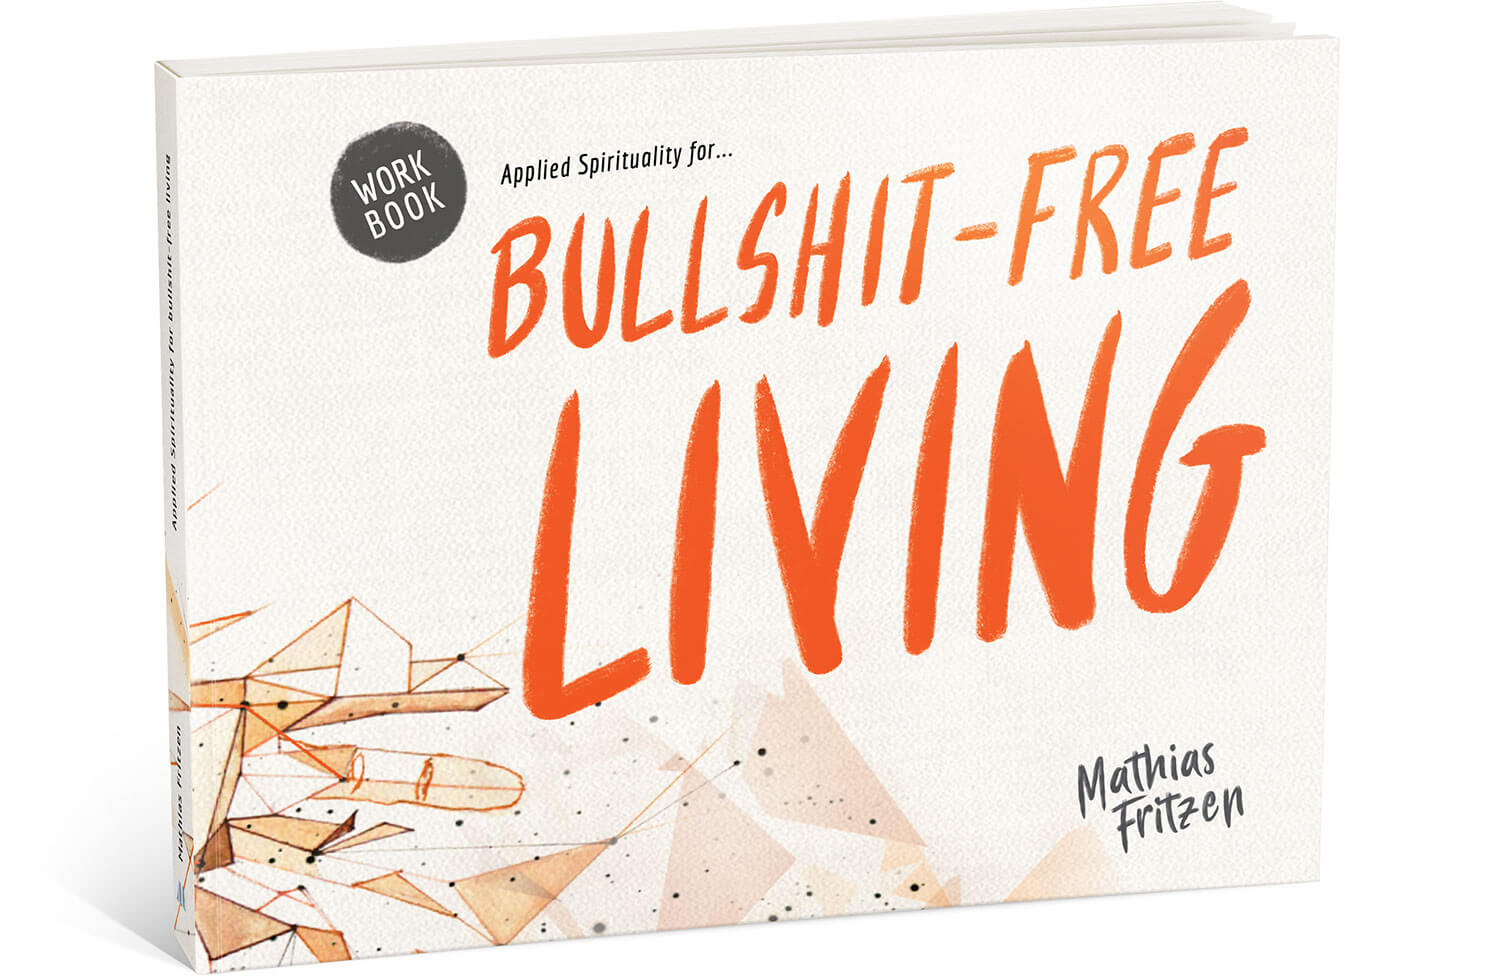 Applied Spirituality for Bullshit-Free Living Workbook - Mathias Fritzen